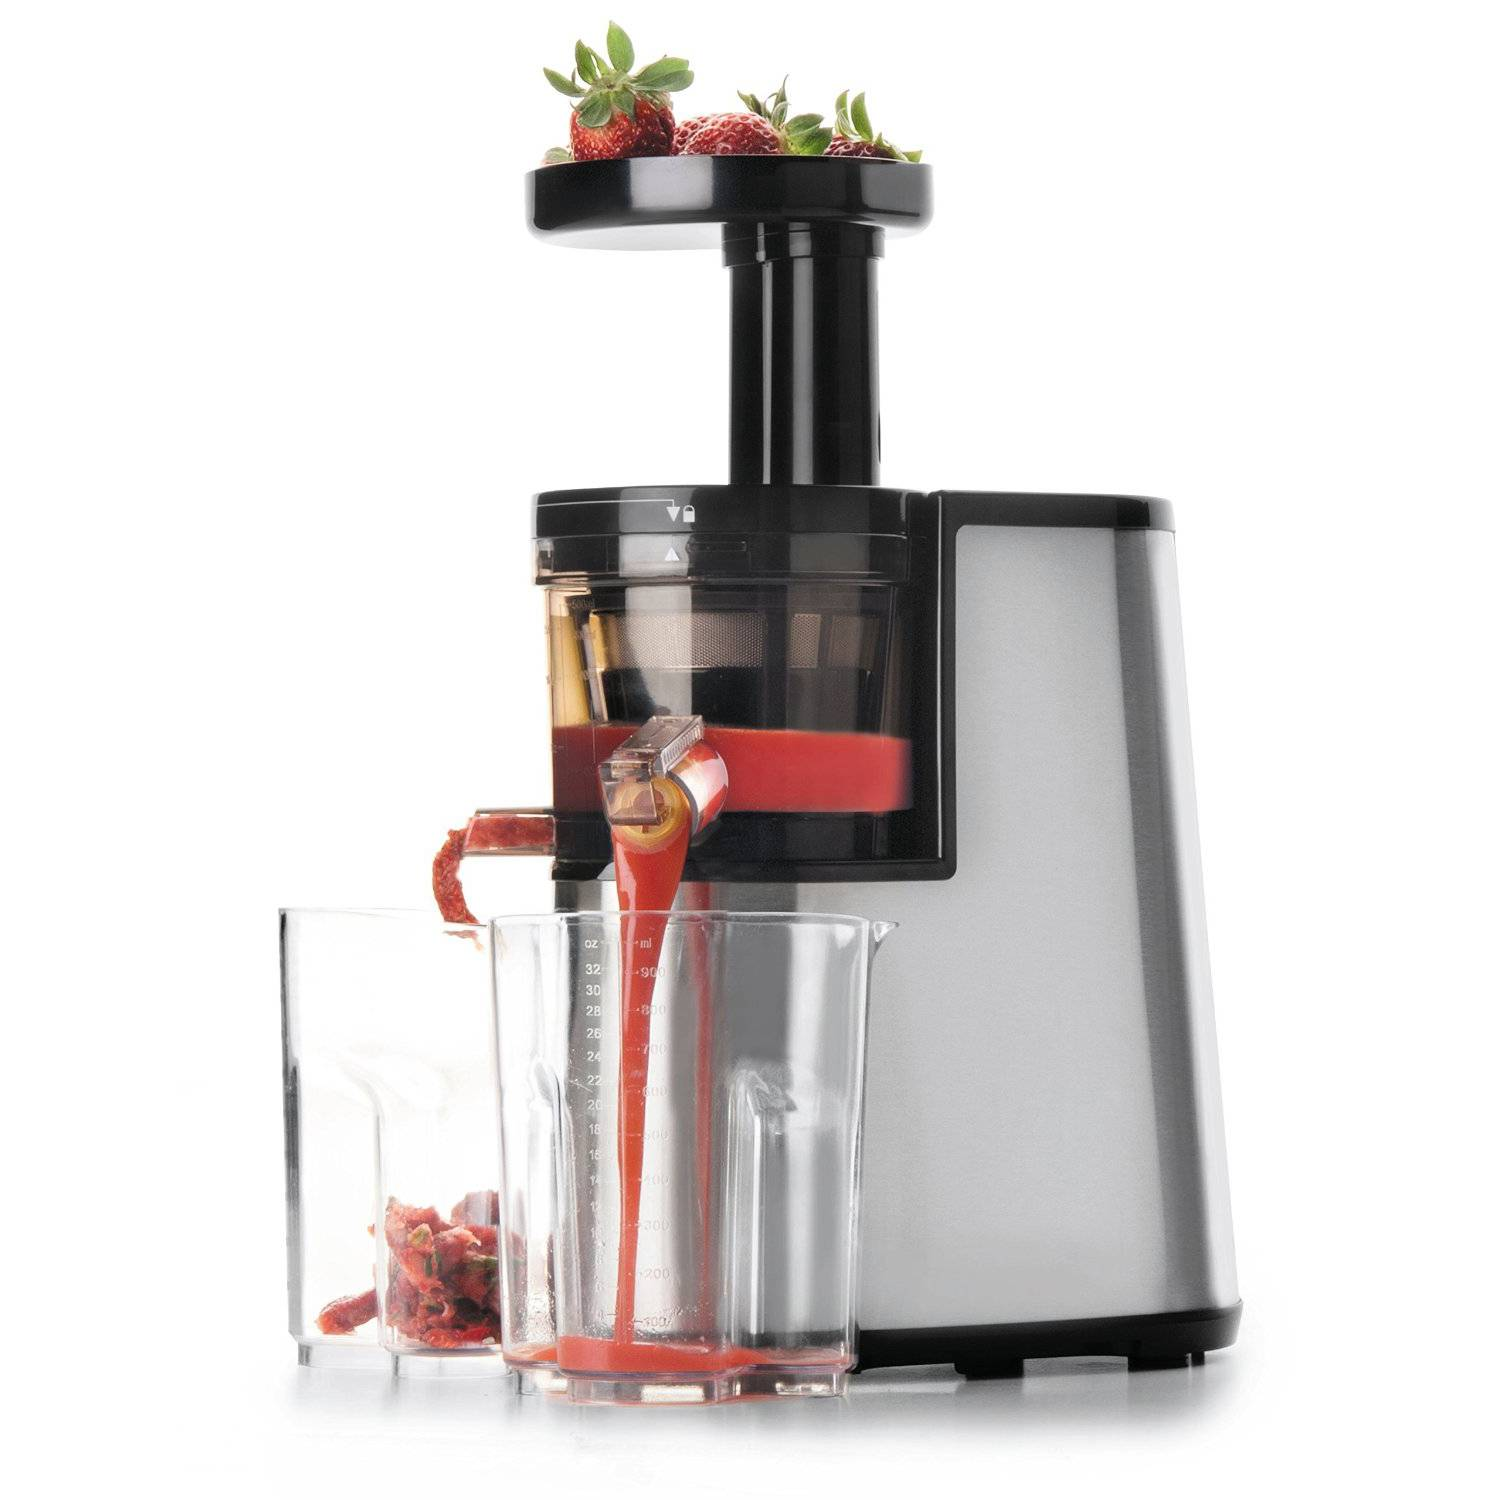 Lacor Presse-agrumes lent 200w - Presse-fruits - Lacor